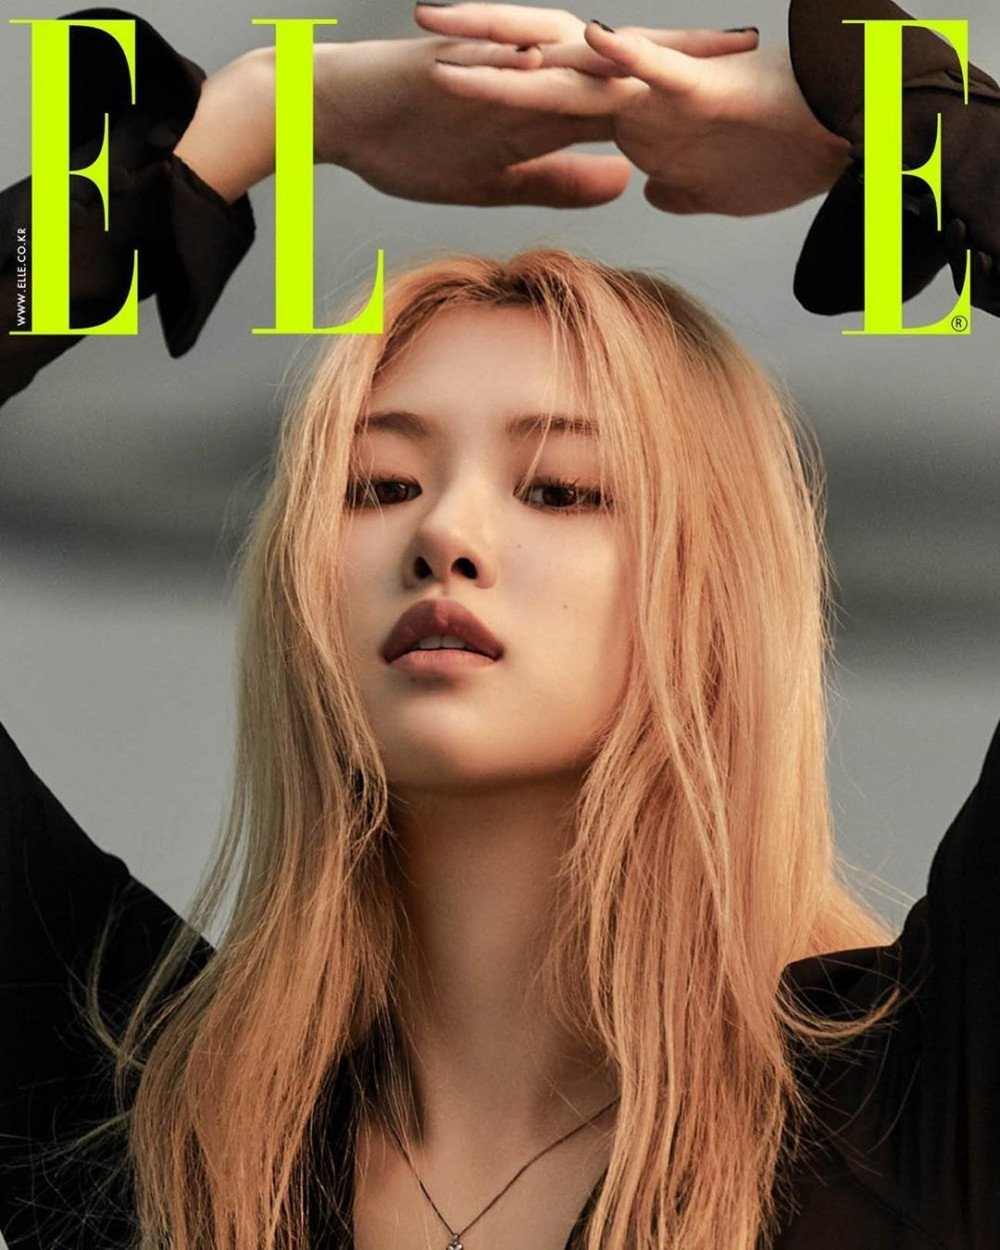 BLACKPINK's Rosé fortune, what does she spend her money on?